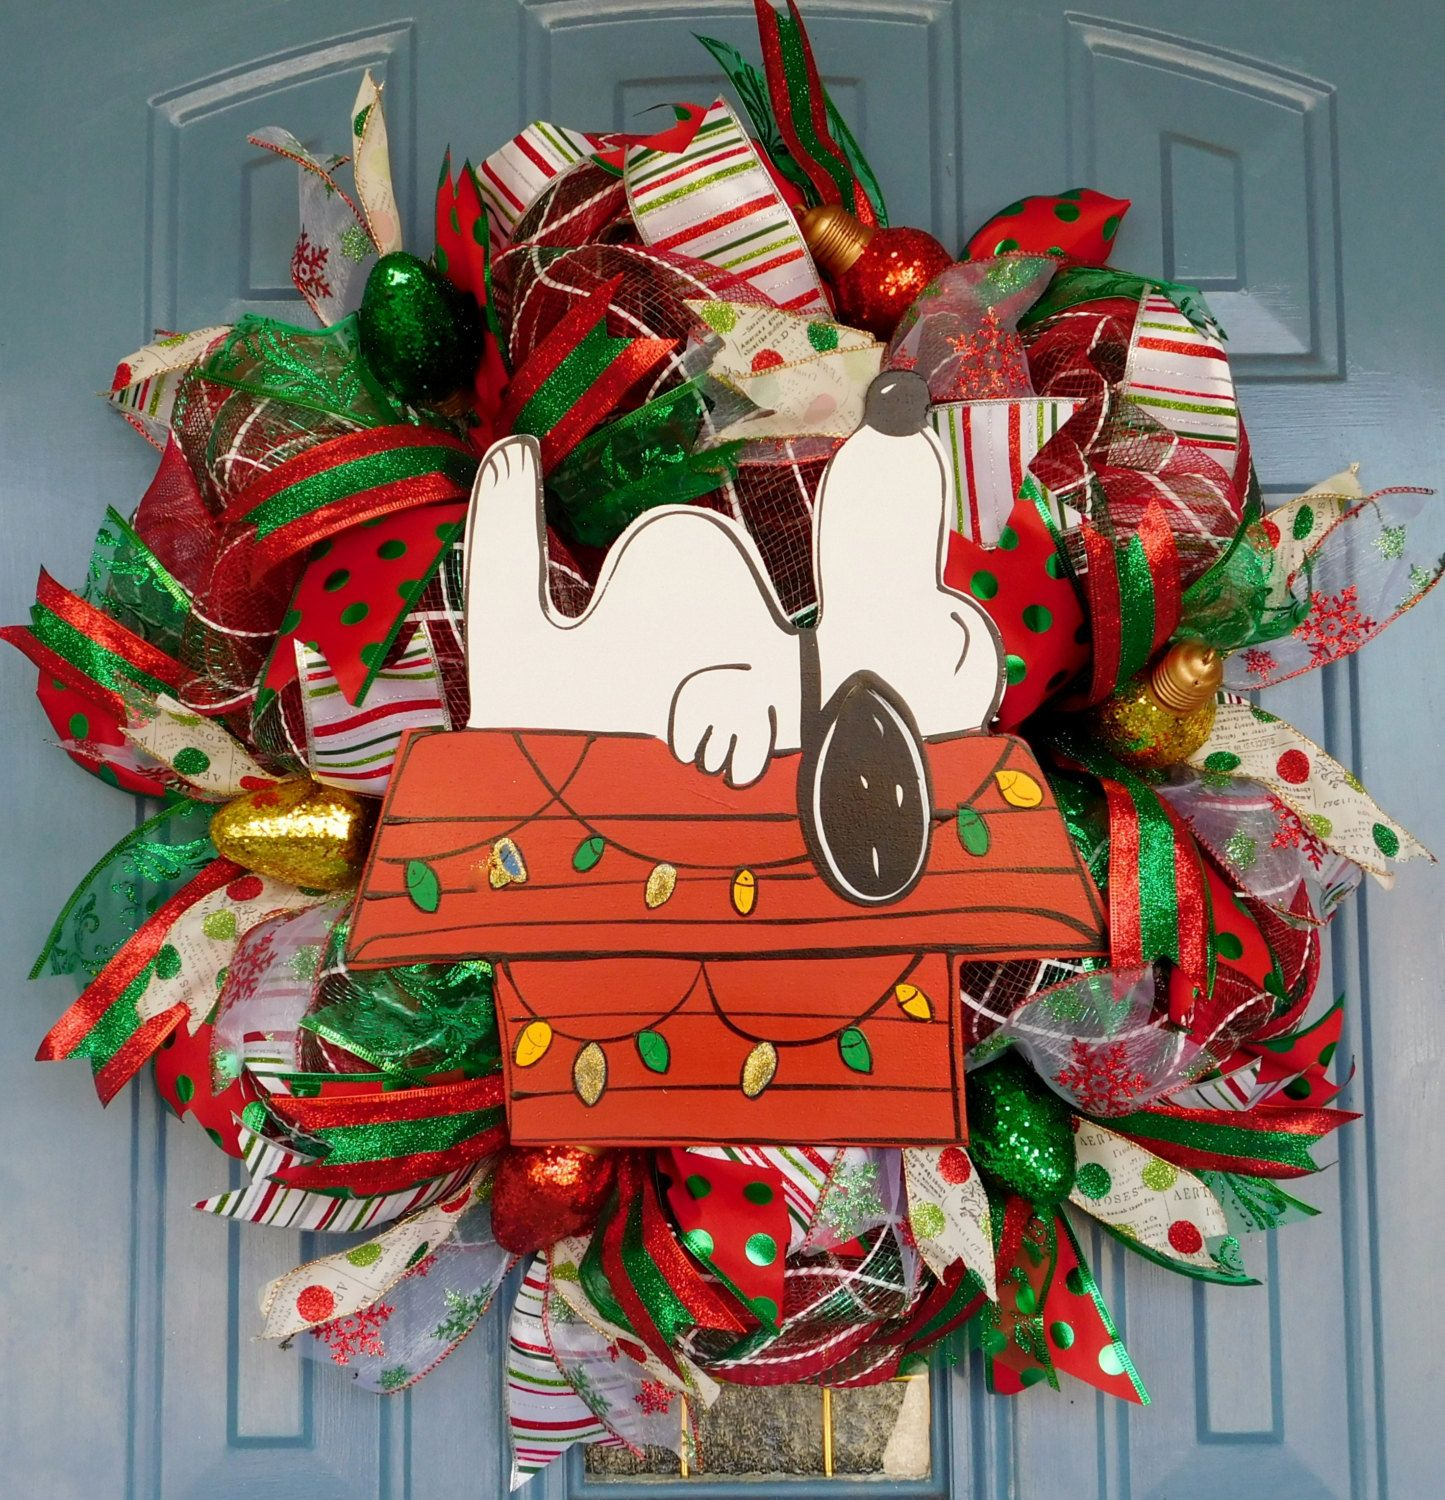 Snoopy outdoor christmas decorations - Snoopy On His Doghouse With Christmas Lights Deco Mesh Wreath